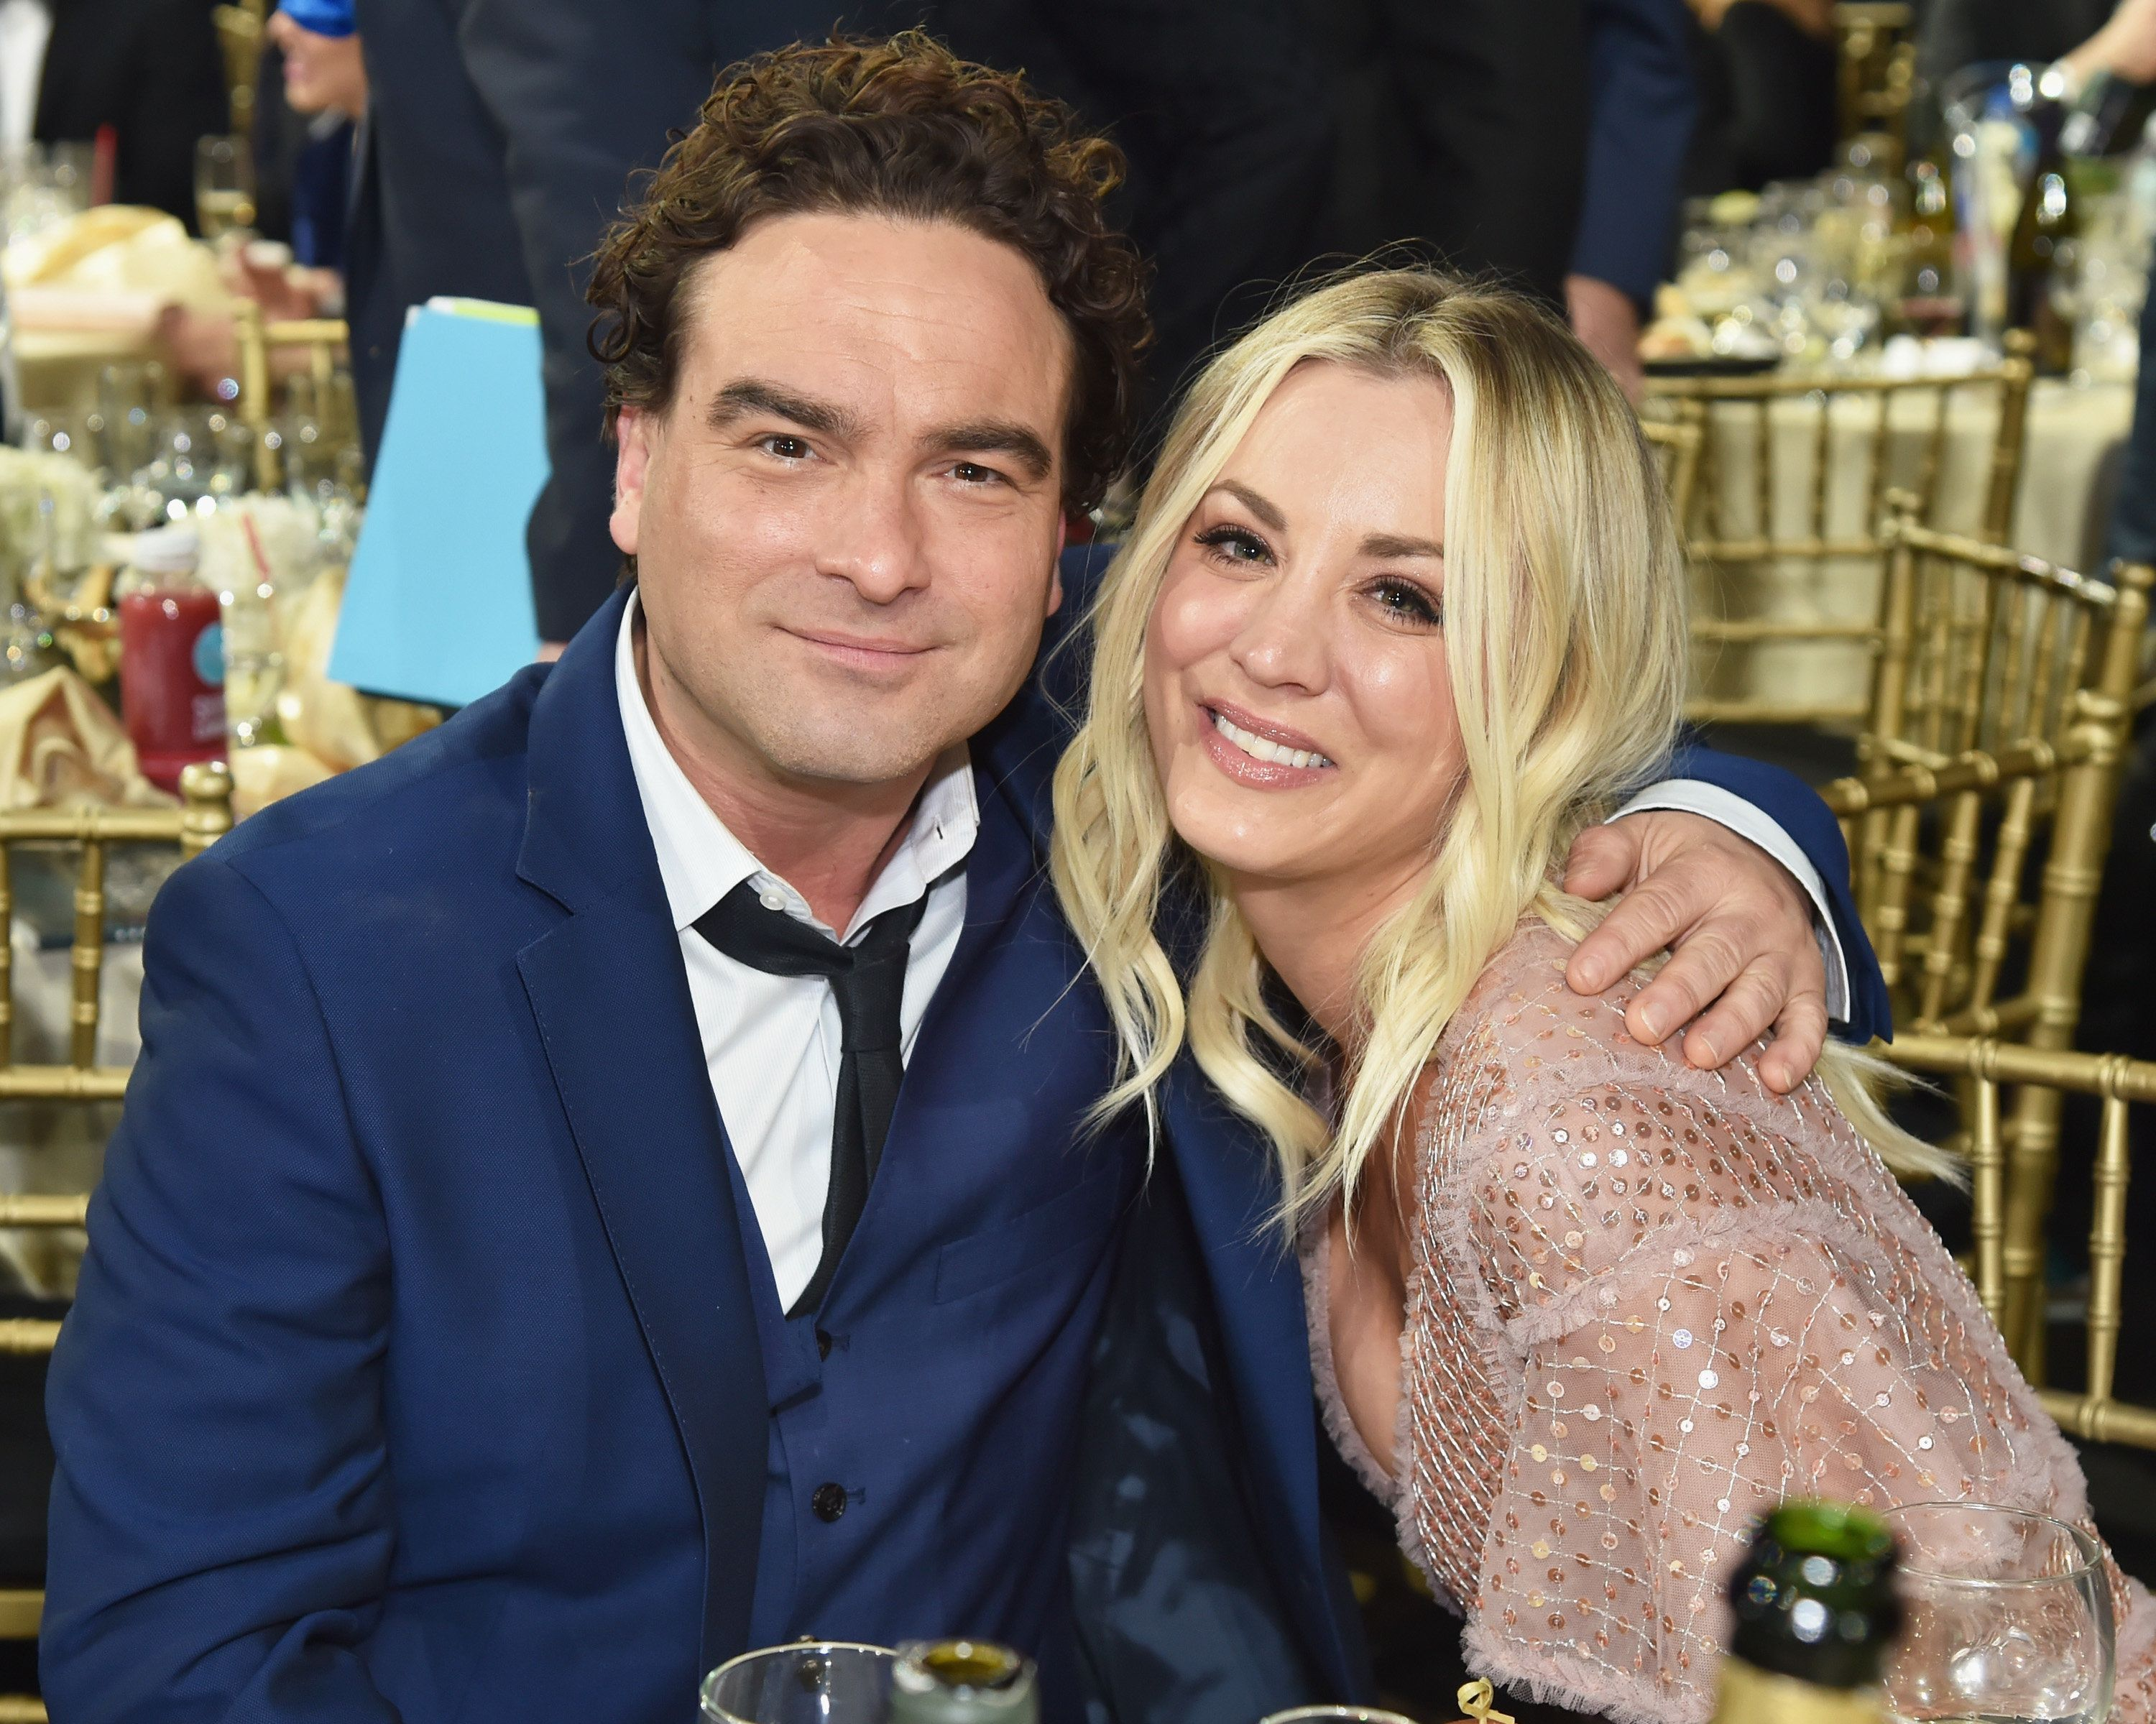 SANTA MONICA, CA - JANUARY 11:  Actors Johnny Galecki (L) and Kaley Cuoco attend The 23rd Annual Critics' Choice Awards at Barker Hangar on January 11, 2018 in Santa Monica, California.  (Photo by Kevin Mazur/WireImage)